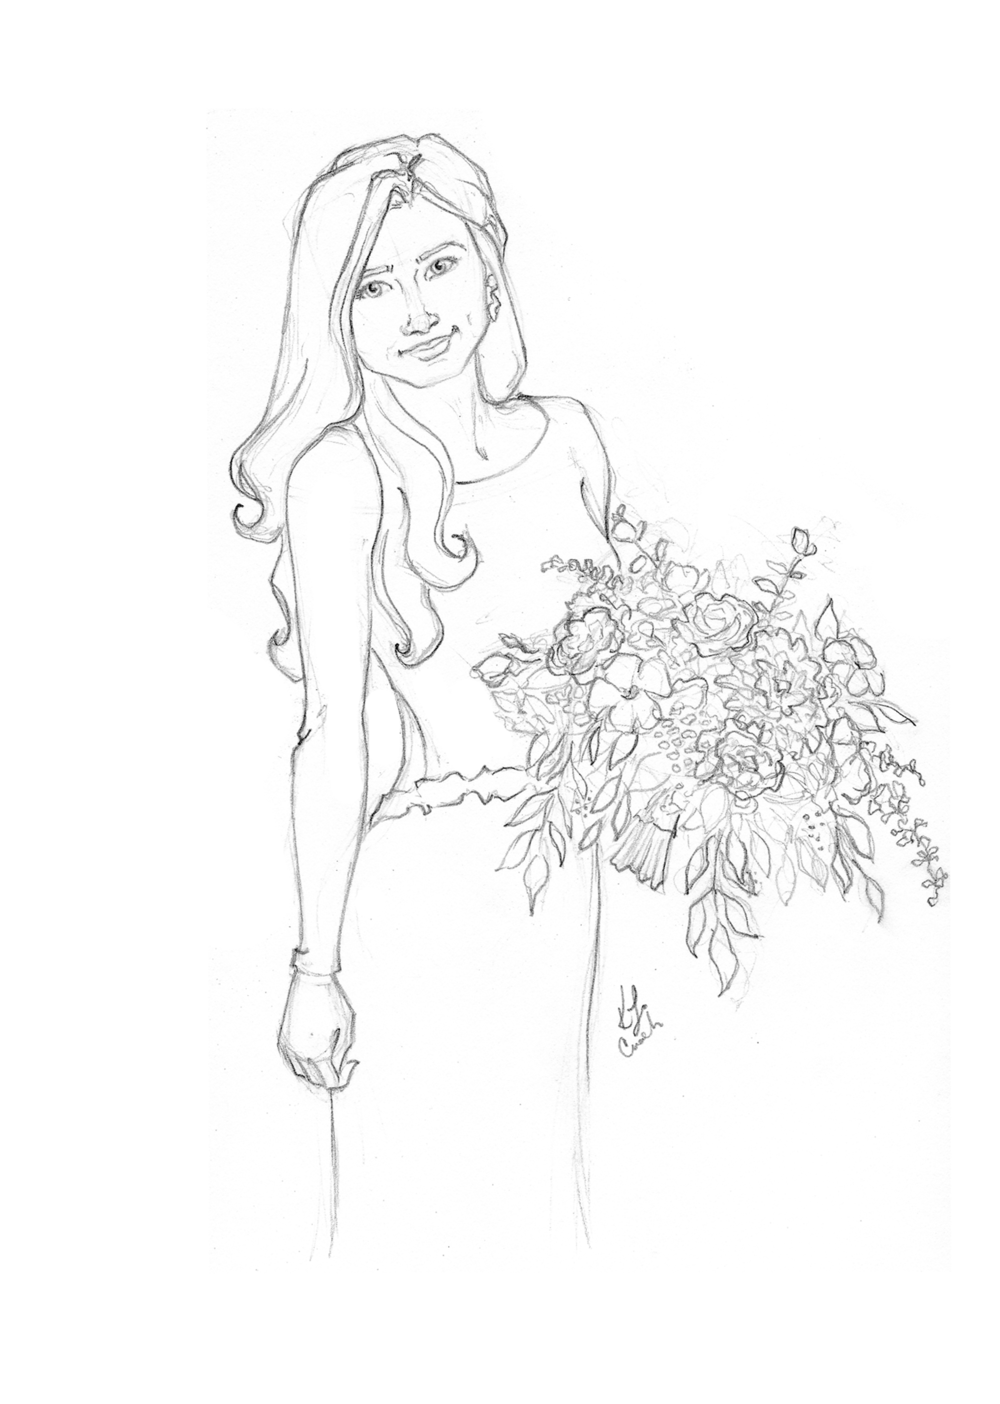 Custom bridal portrait sketch. Fine art bridal portrait for a unique anniversary gift. #customportrait #portraitillustration #blusheddesign #portraitsketch